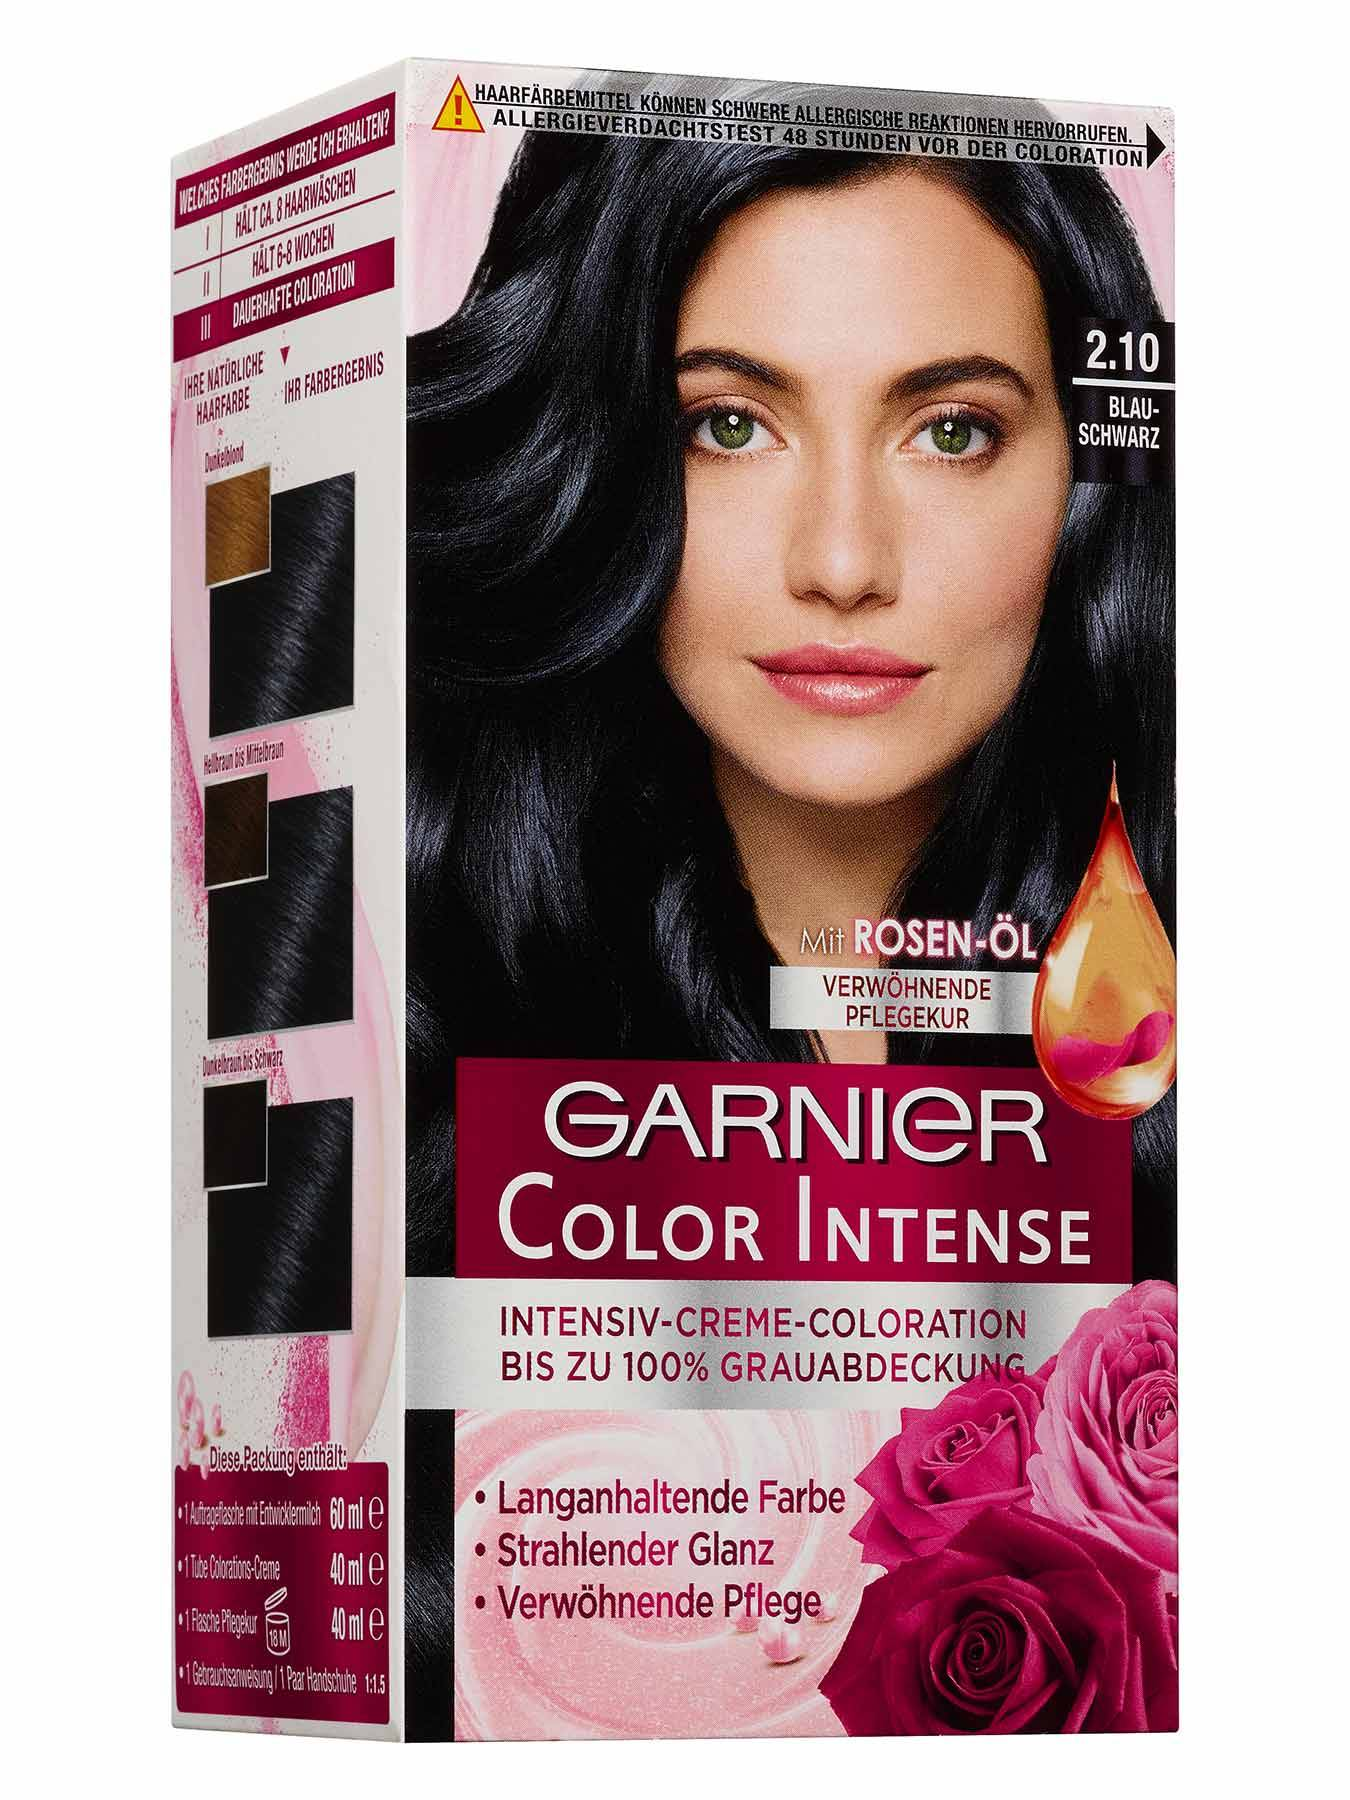 2-10-Blauschwarz-Intensiv-Creme-Coloration-Color-Intense-1Stk-Vorderseite-Garnier-Deutschland-gr